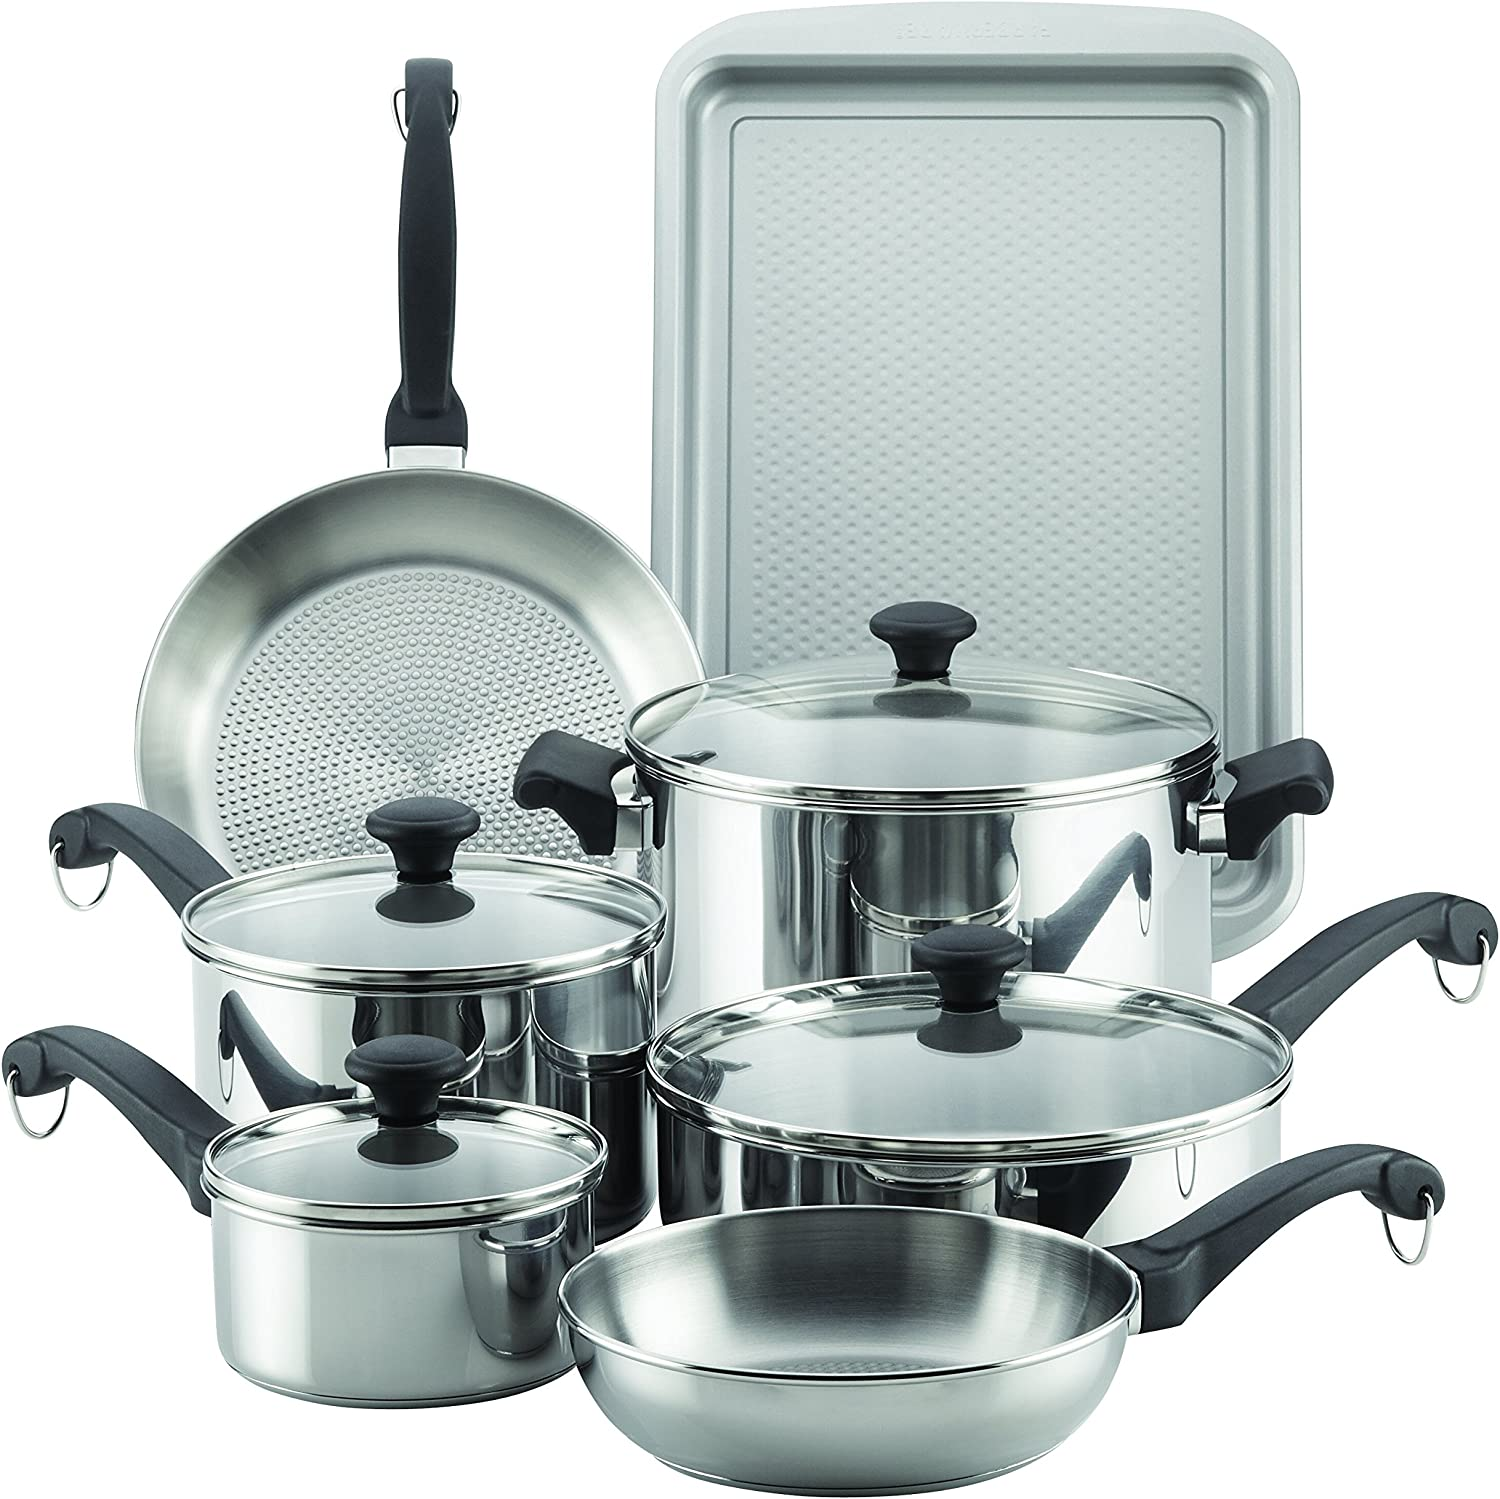 Farberware 70217 Classic Traditions Stainless Steel Cookware Set, Large,